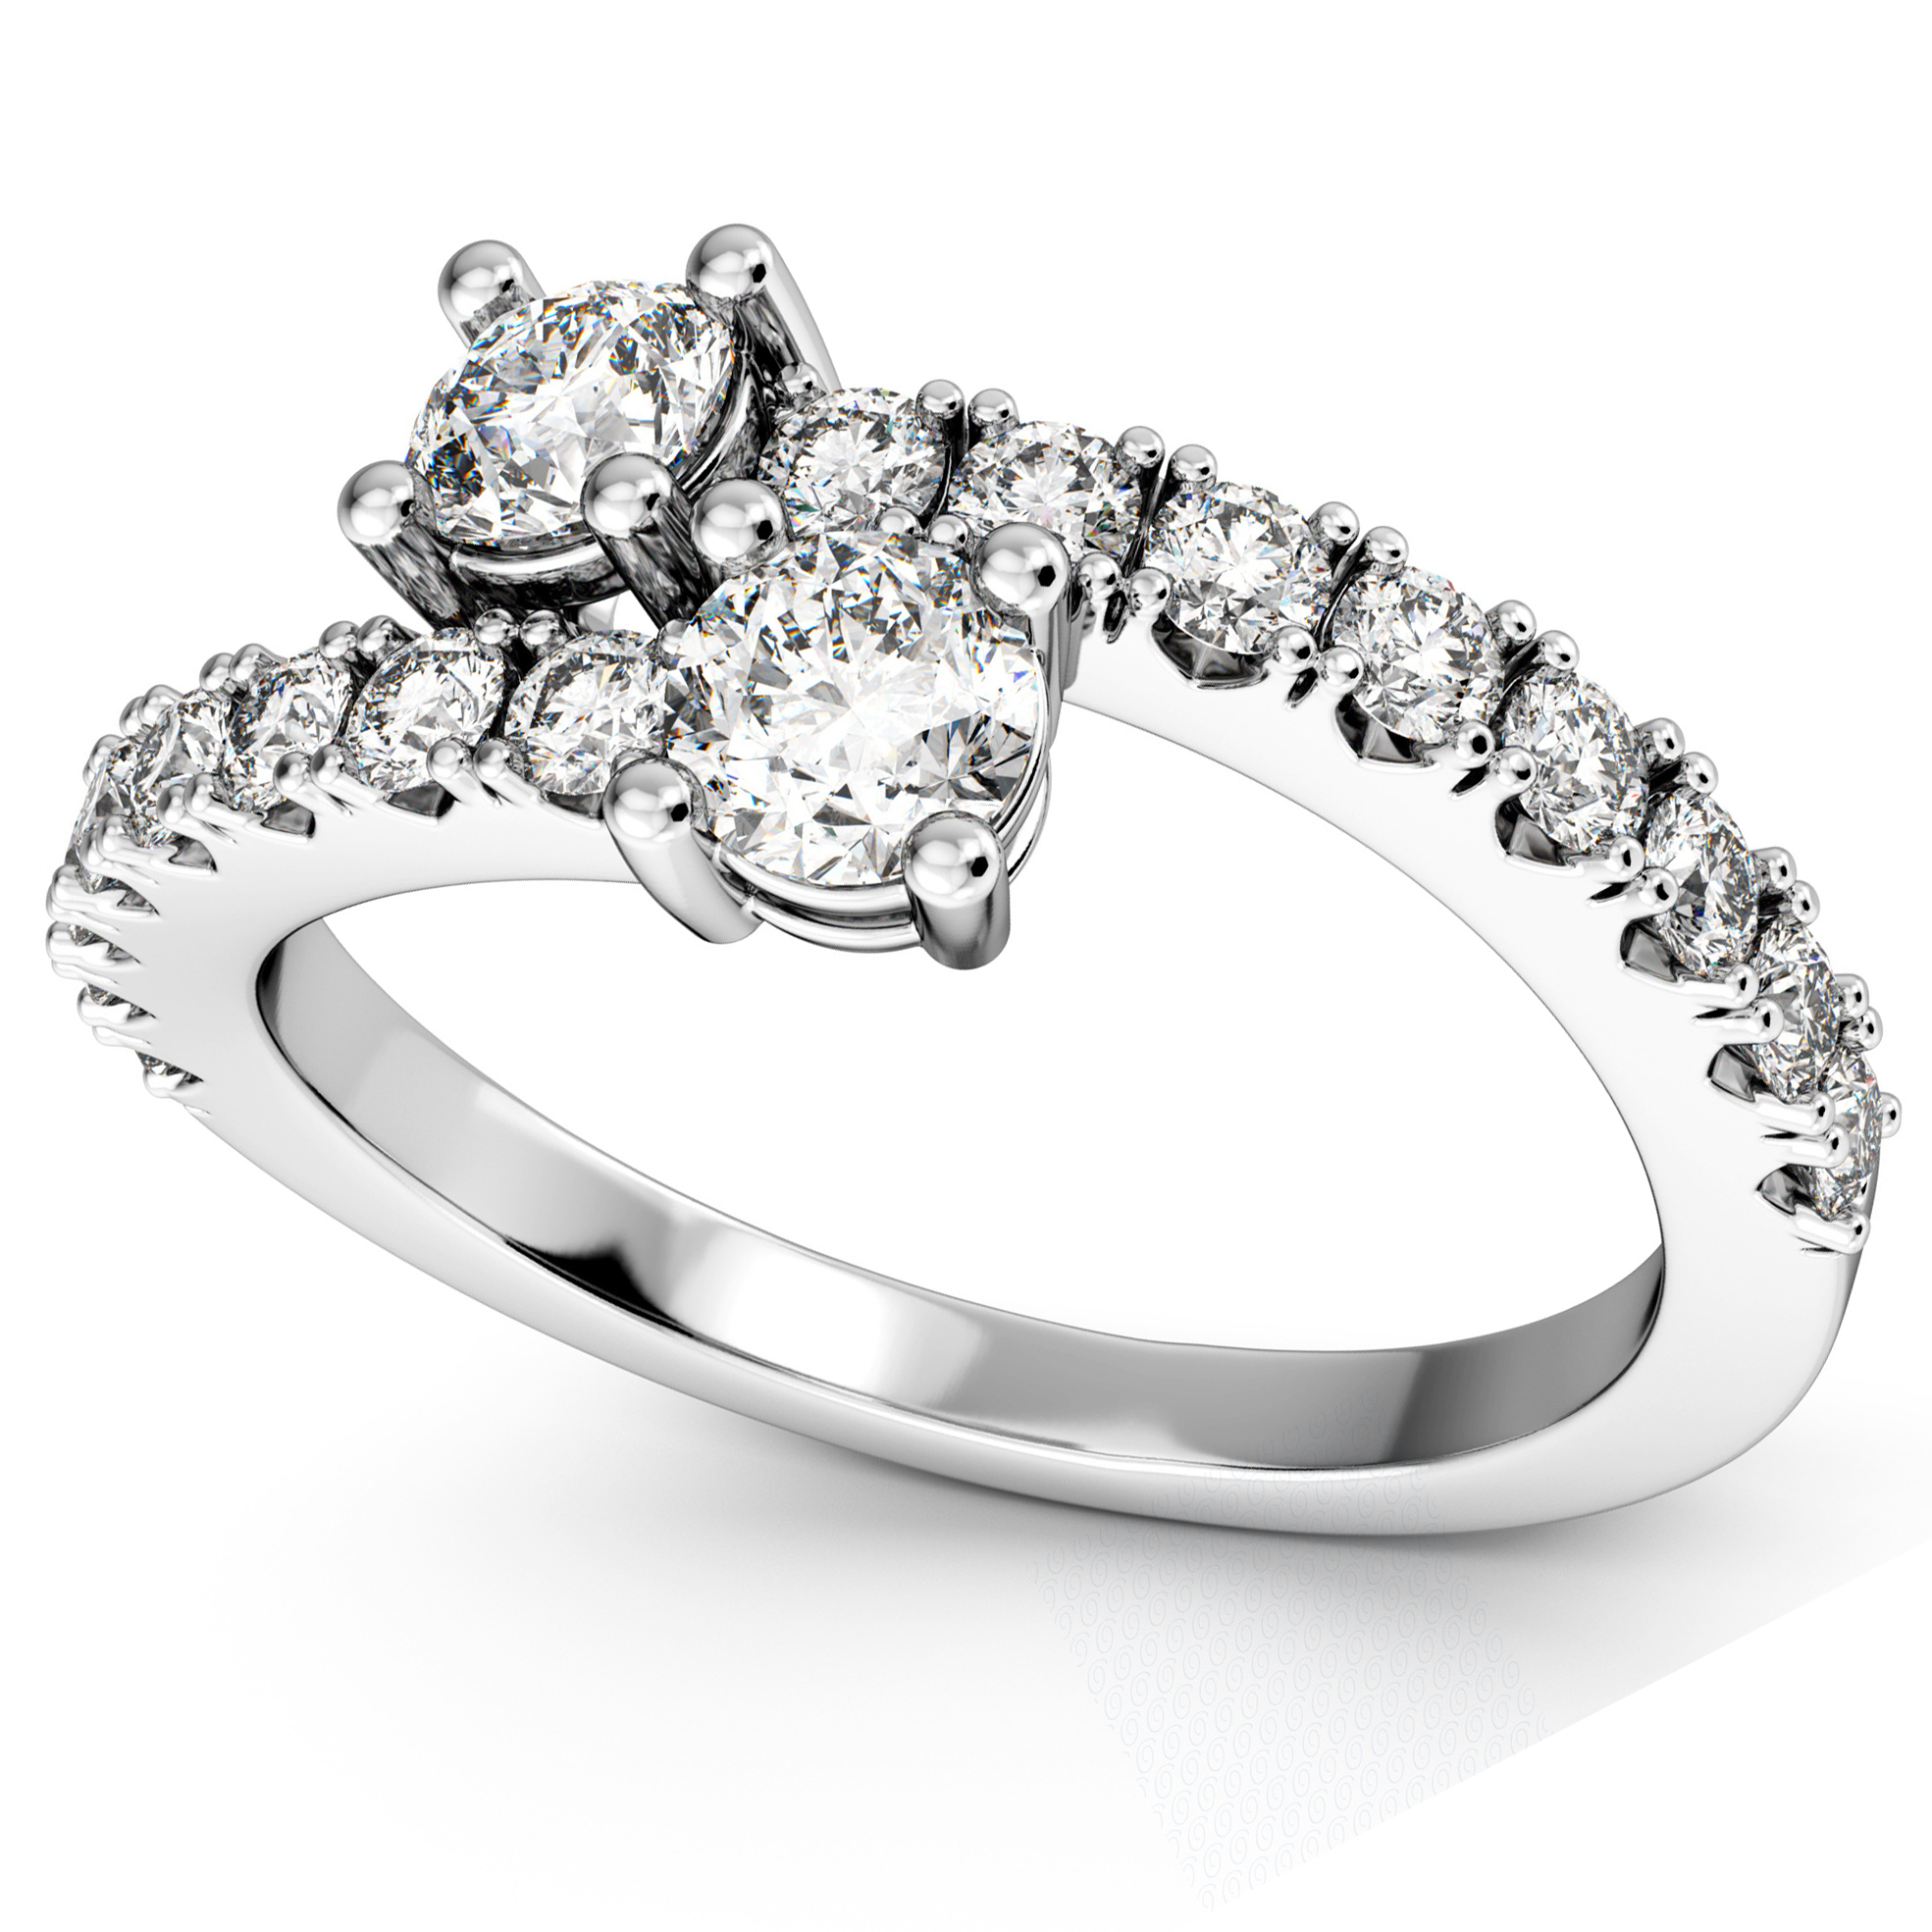 archives imports ladies ring rings diamond jewelry stone sbt engagement